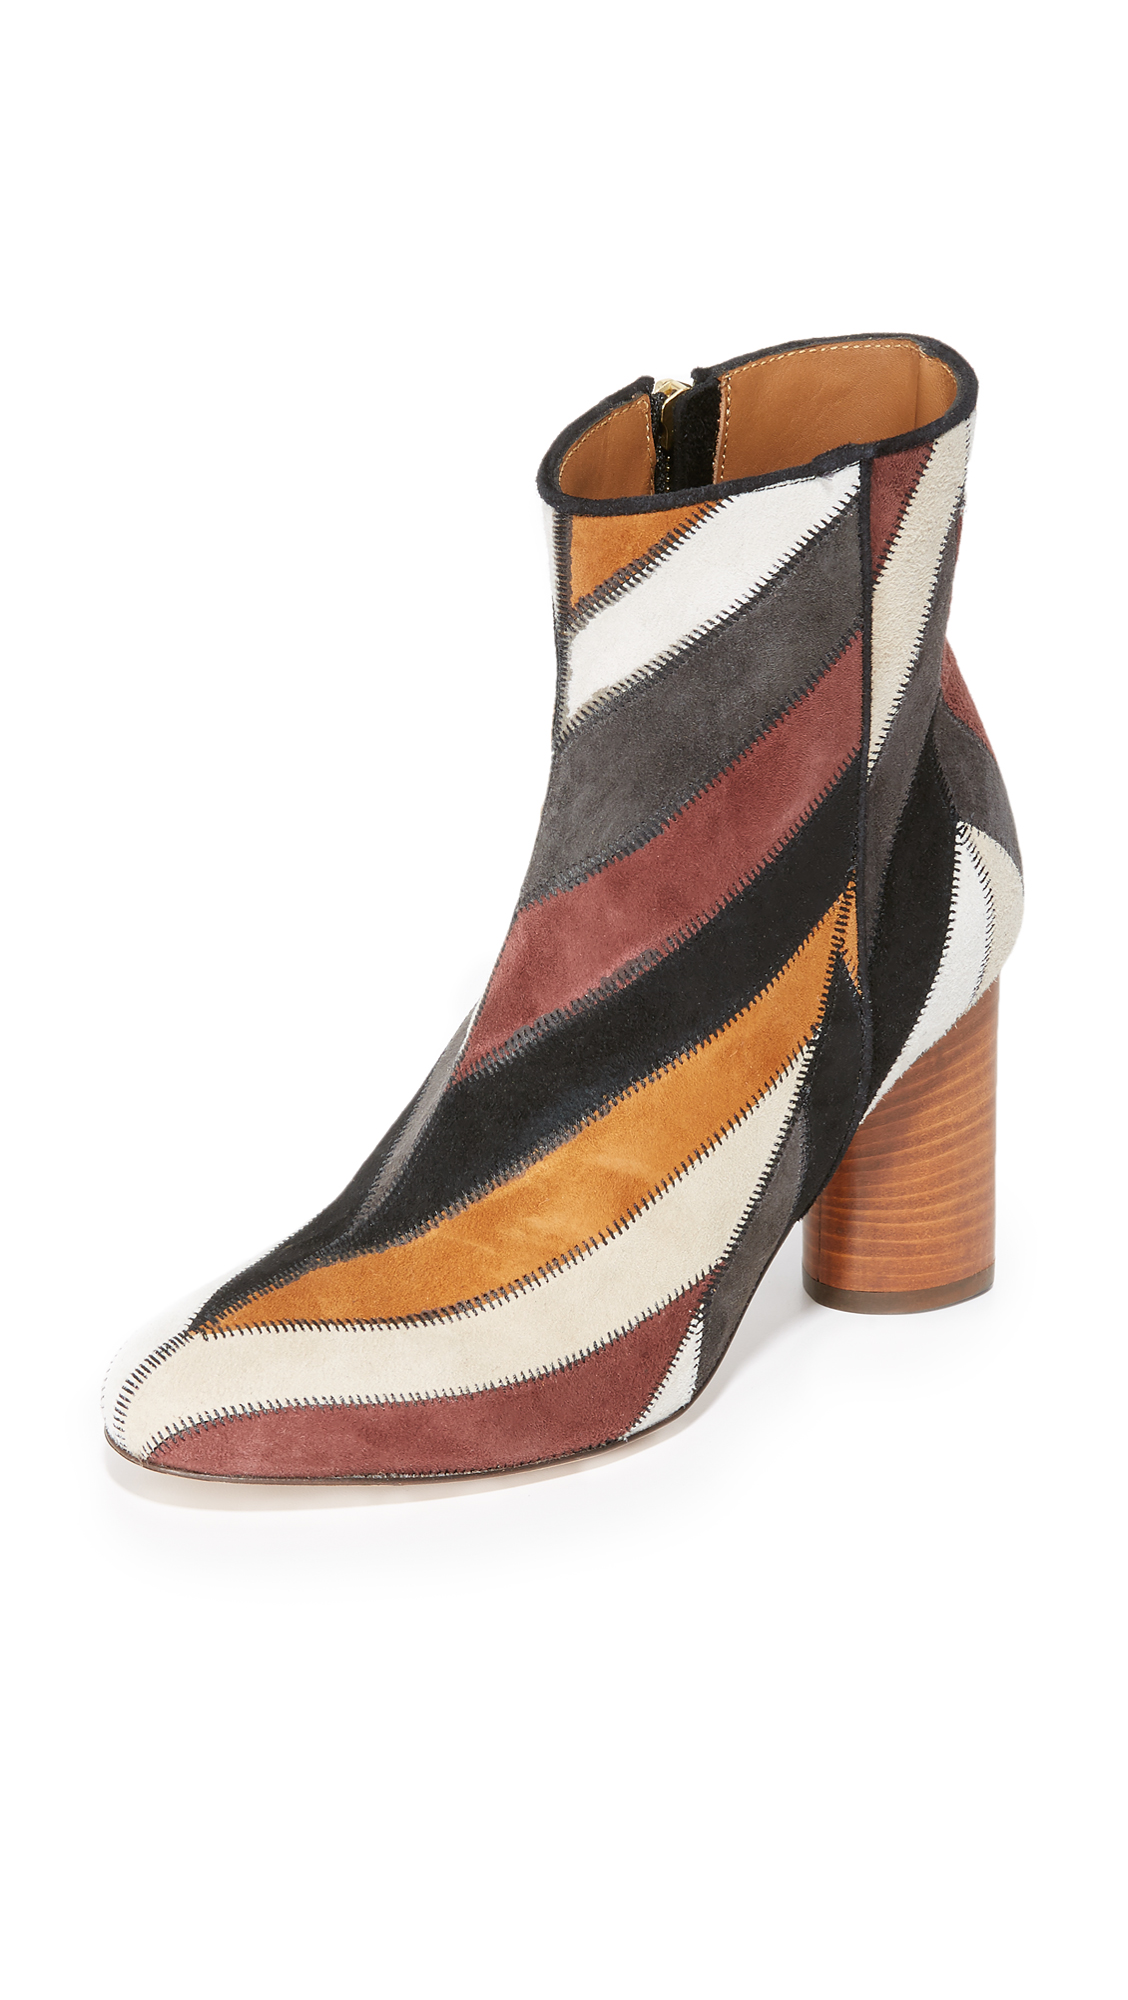 Sophisticated Jerome Dreyfuss booties composed of chevron patches of multi colored suede. Hidden side zip. Inset stacked heel and leather sole. Leather: Goatskin. Made in France. This item cannot be gift boxed. Measurements Heel: 3in / 75mm.